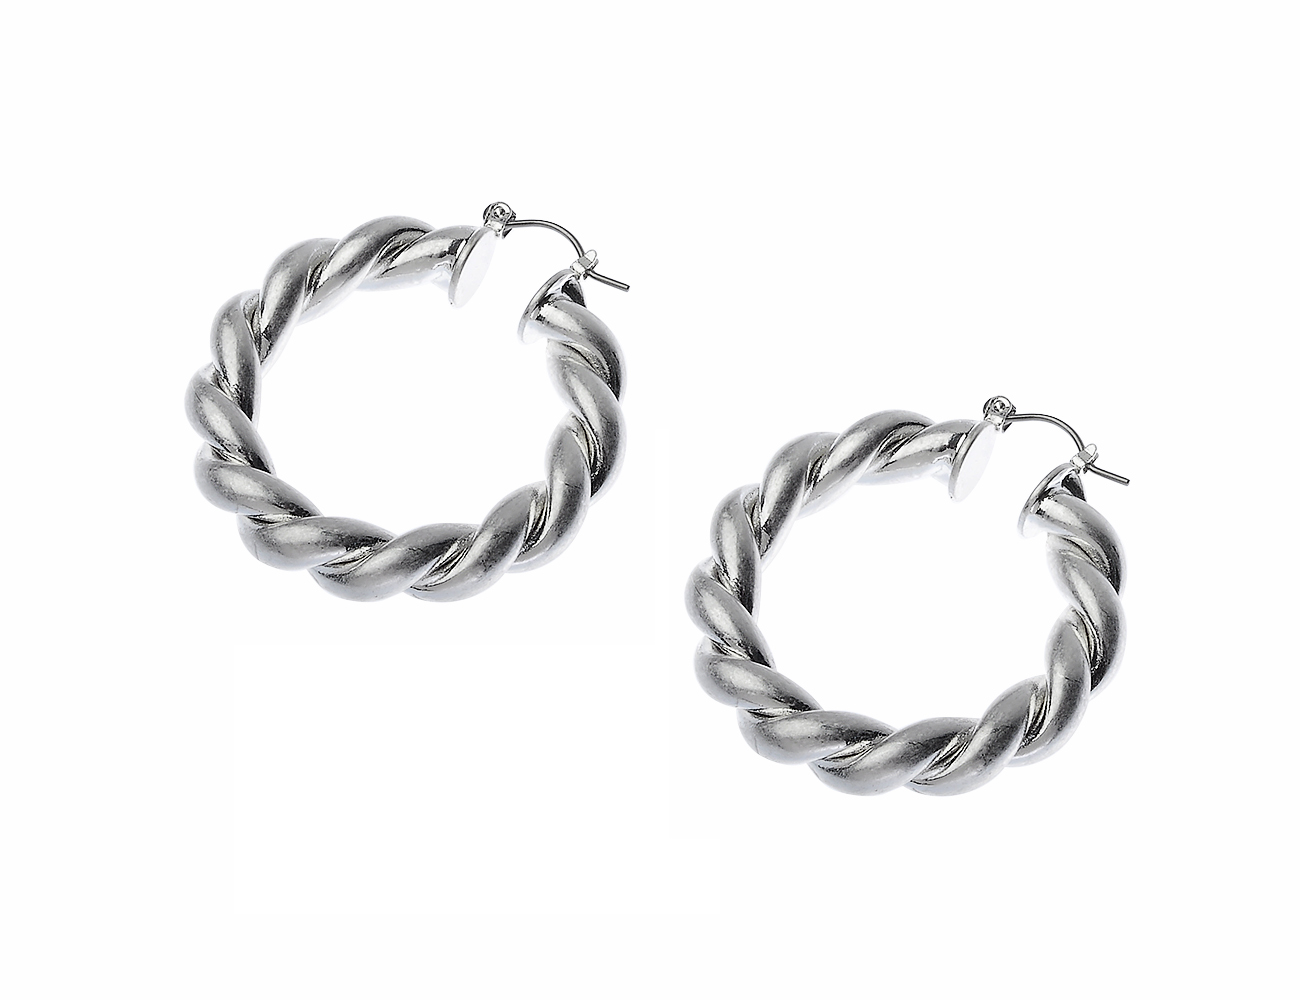 Worn Silver Twist Hoop Earring